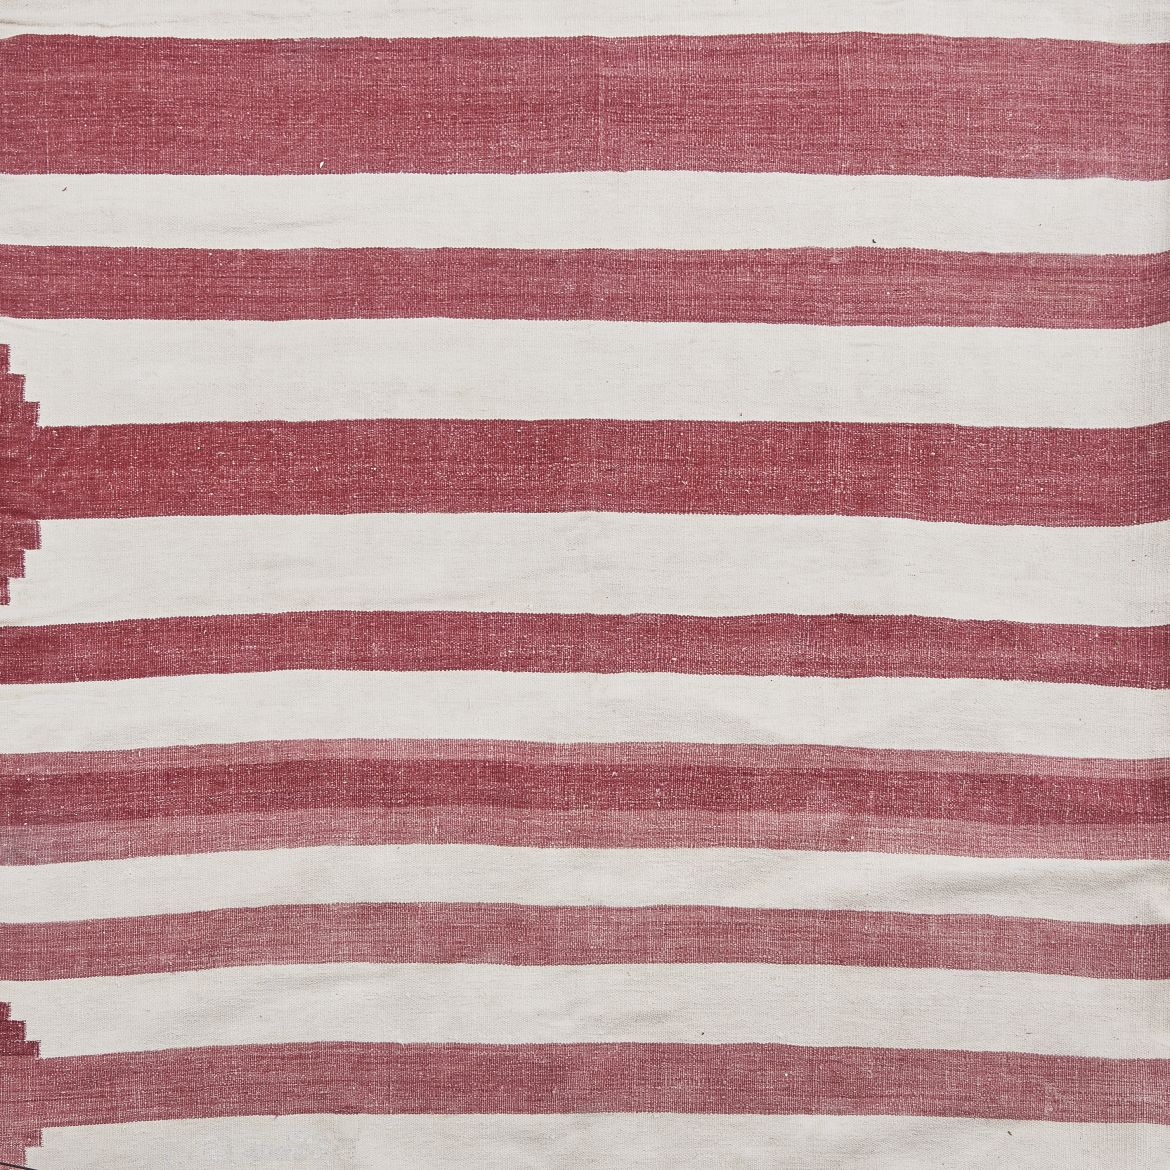 Red And White Uneven Striped Dhurrie With Edge Detail